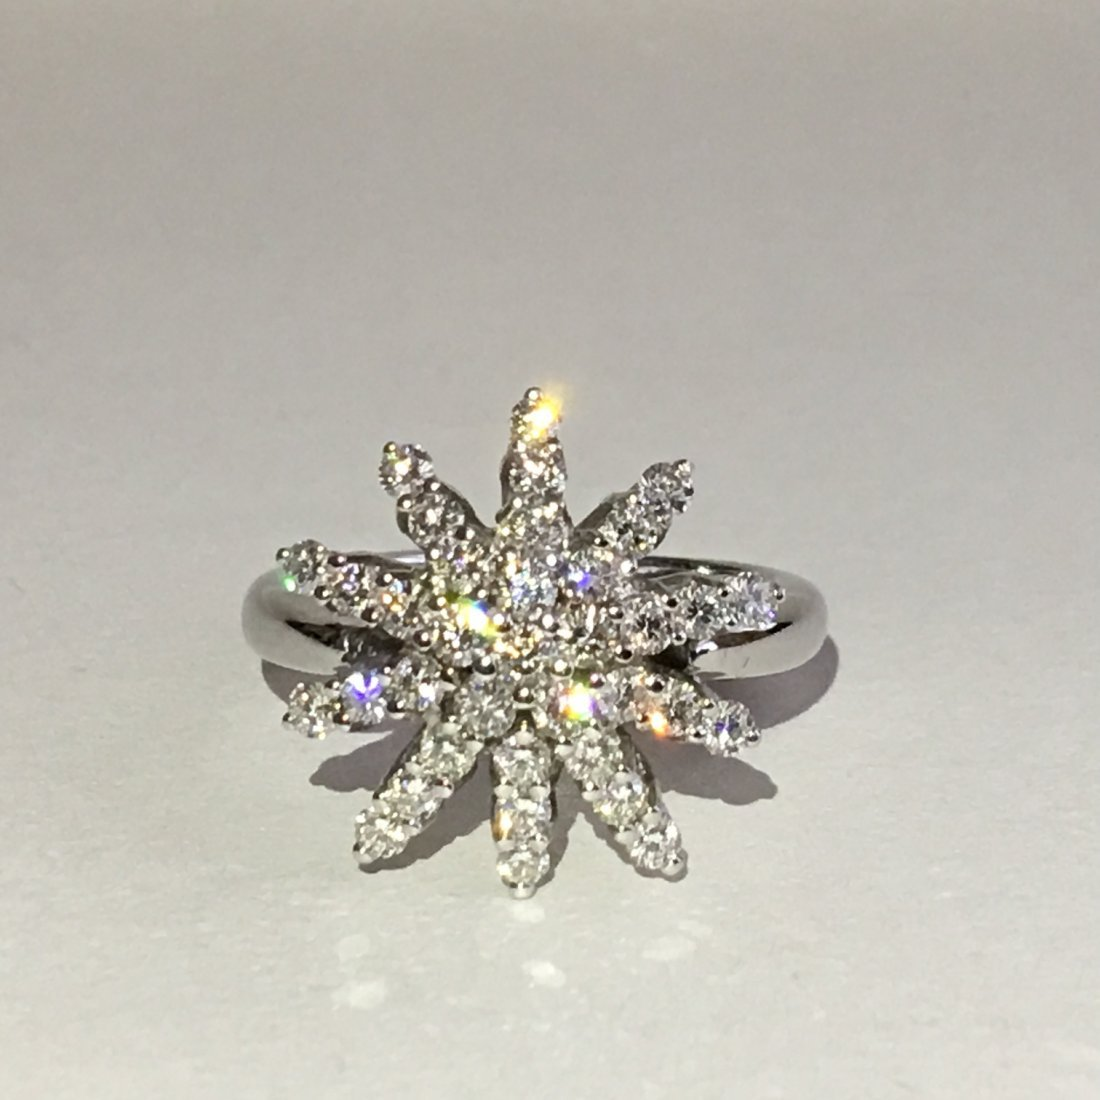 18K White Gold and Diamond Cocktail Ring